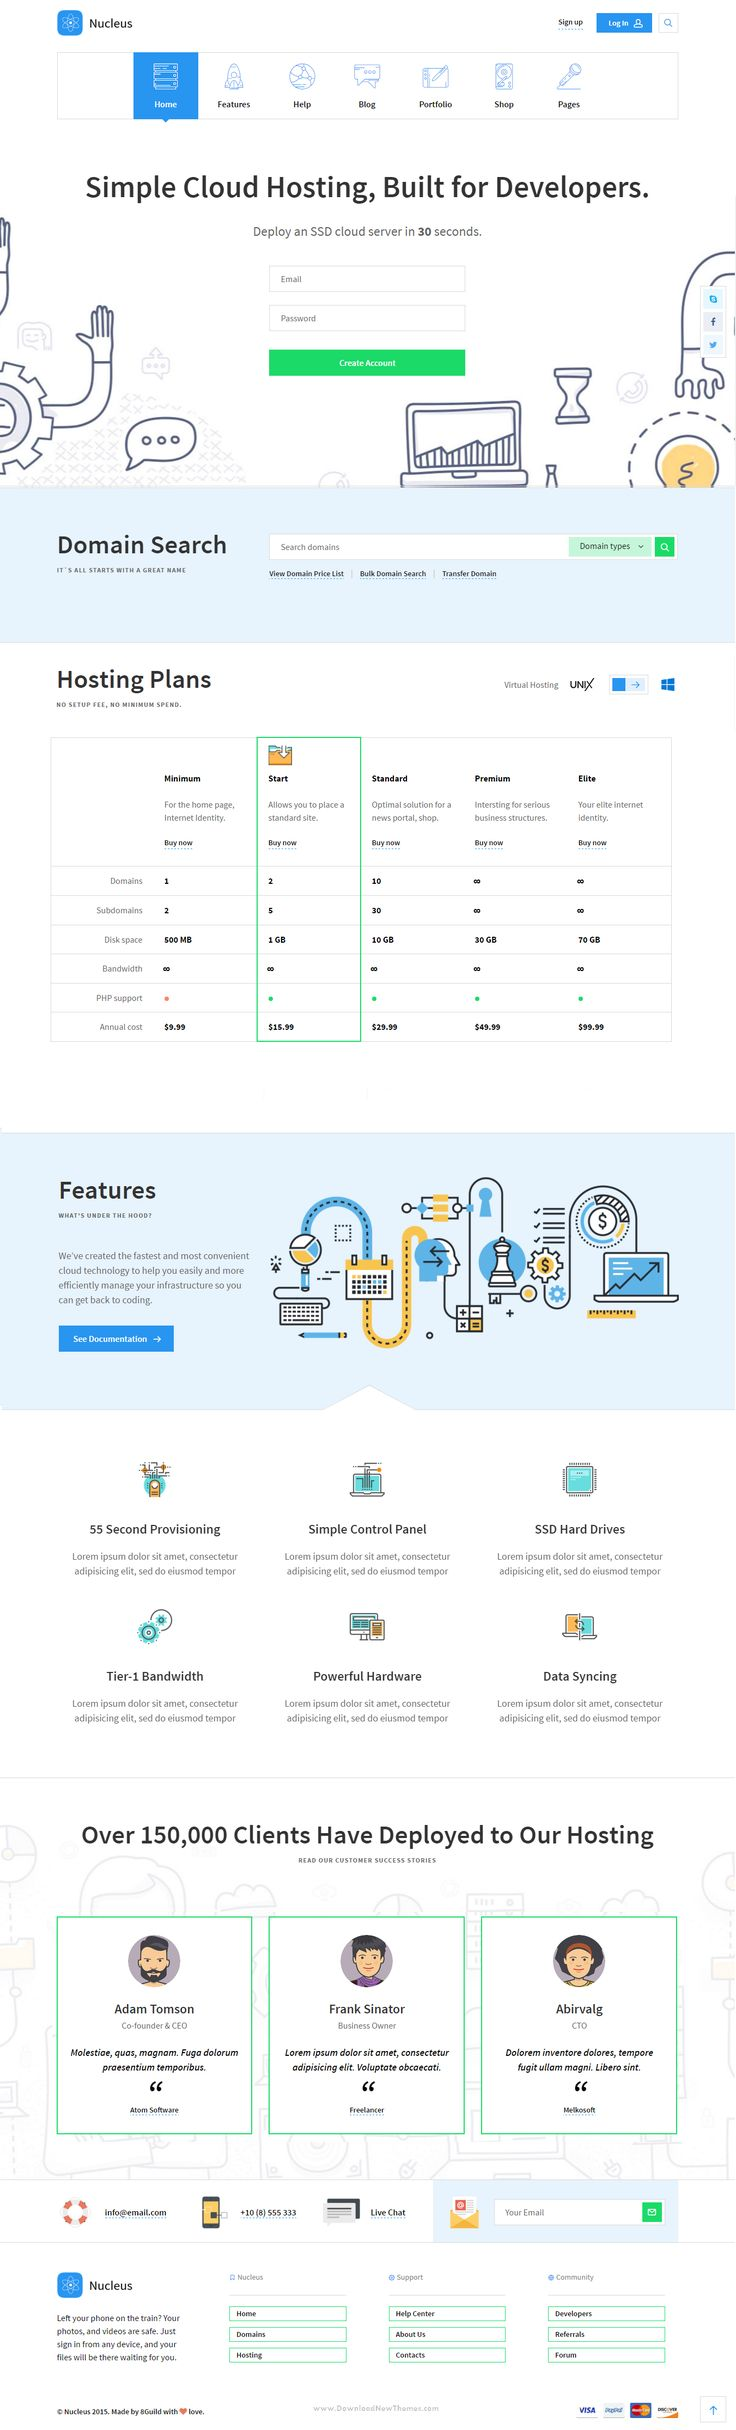 Nucleus - Multipurpose Technology Bootstrap HTML Template. It has 6 Unique and Creative Landing Pages Template #web #hosting #marketing #website